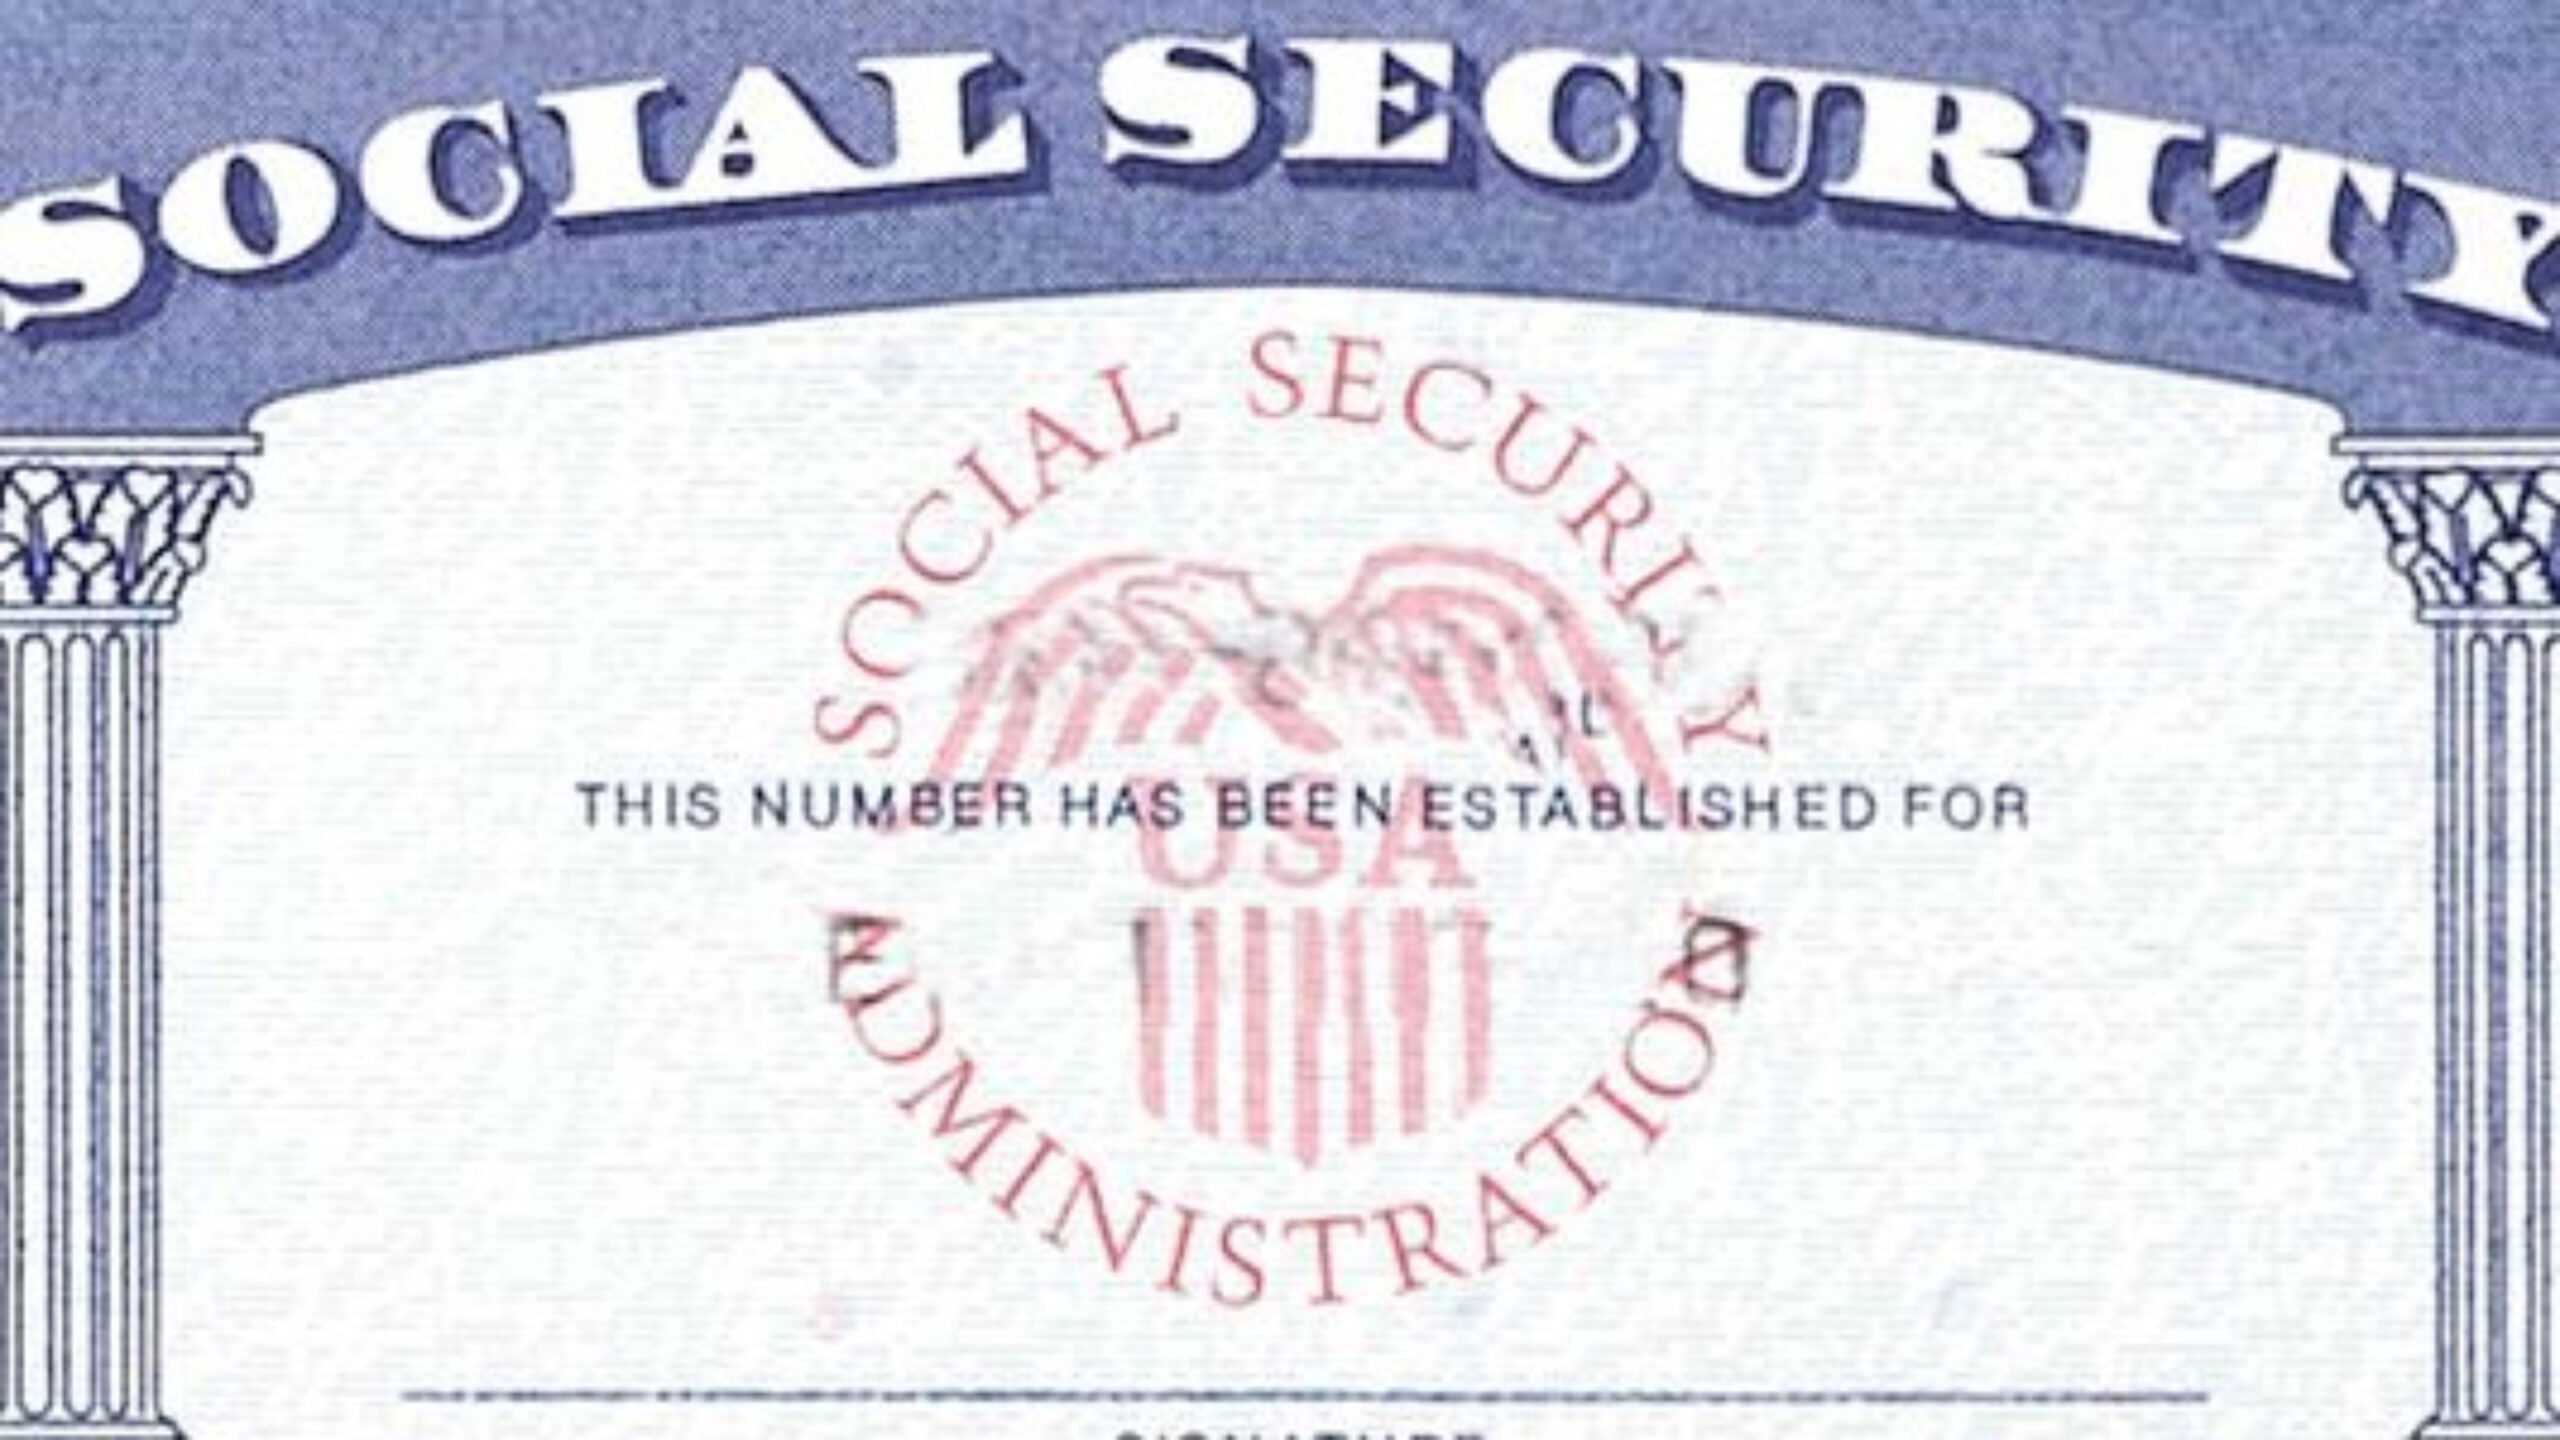 7 Social Security Card Template Psd Images - Social Security Throughout Social Security Card Template Photoshop